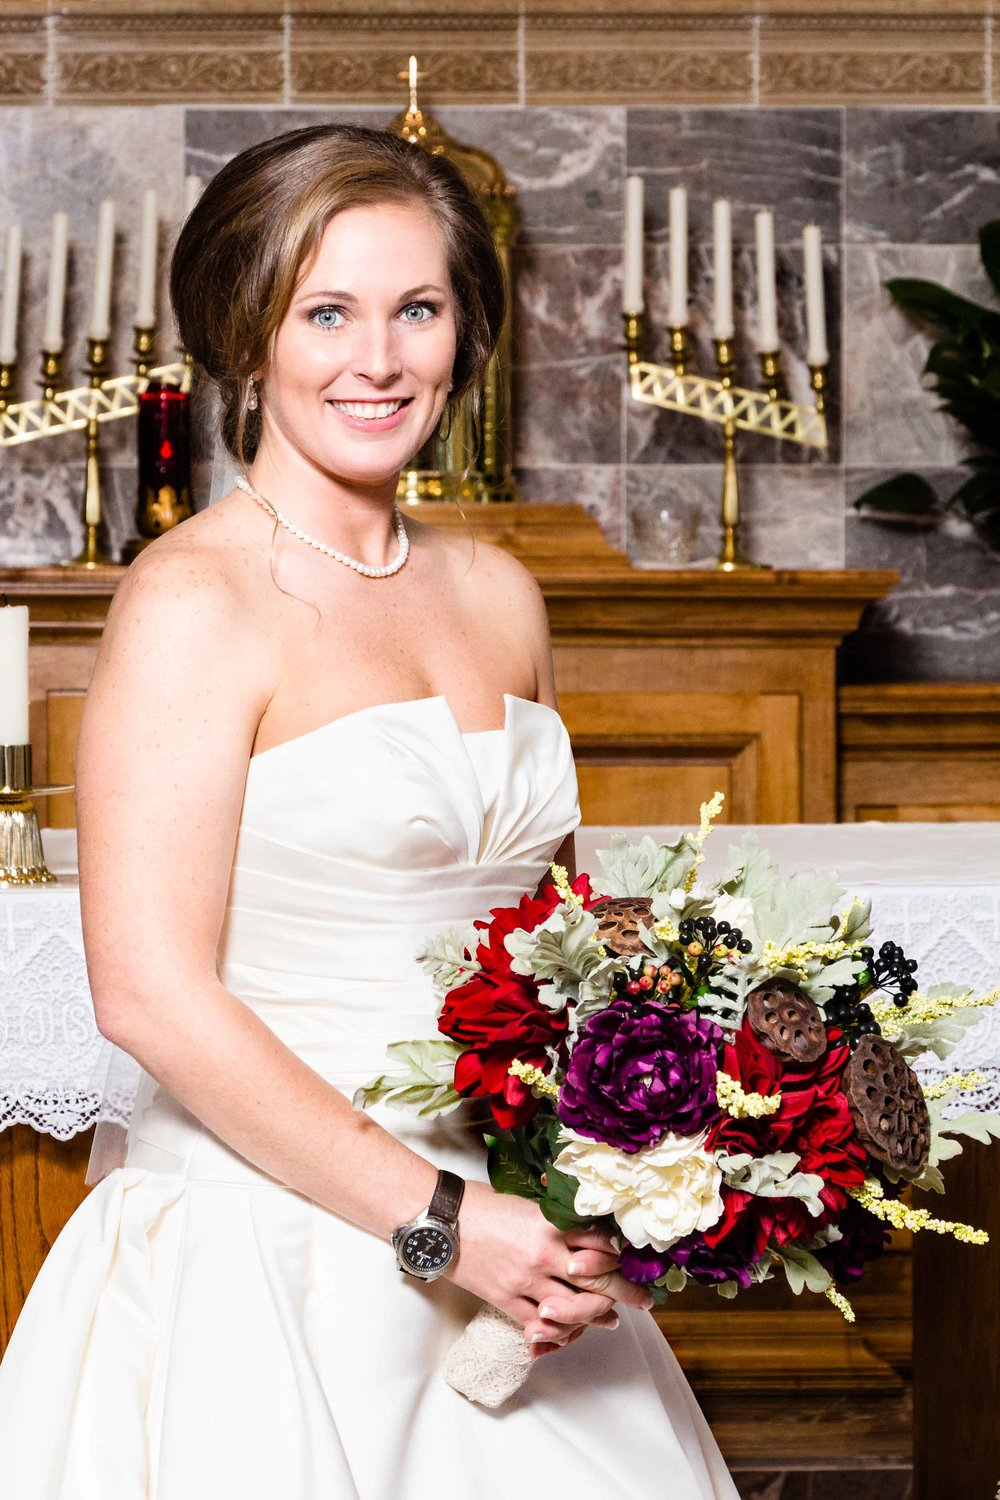 Lindsey made a beautiful bride!